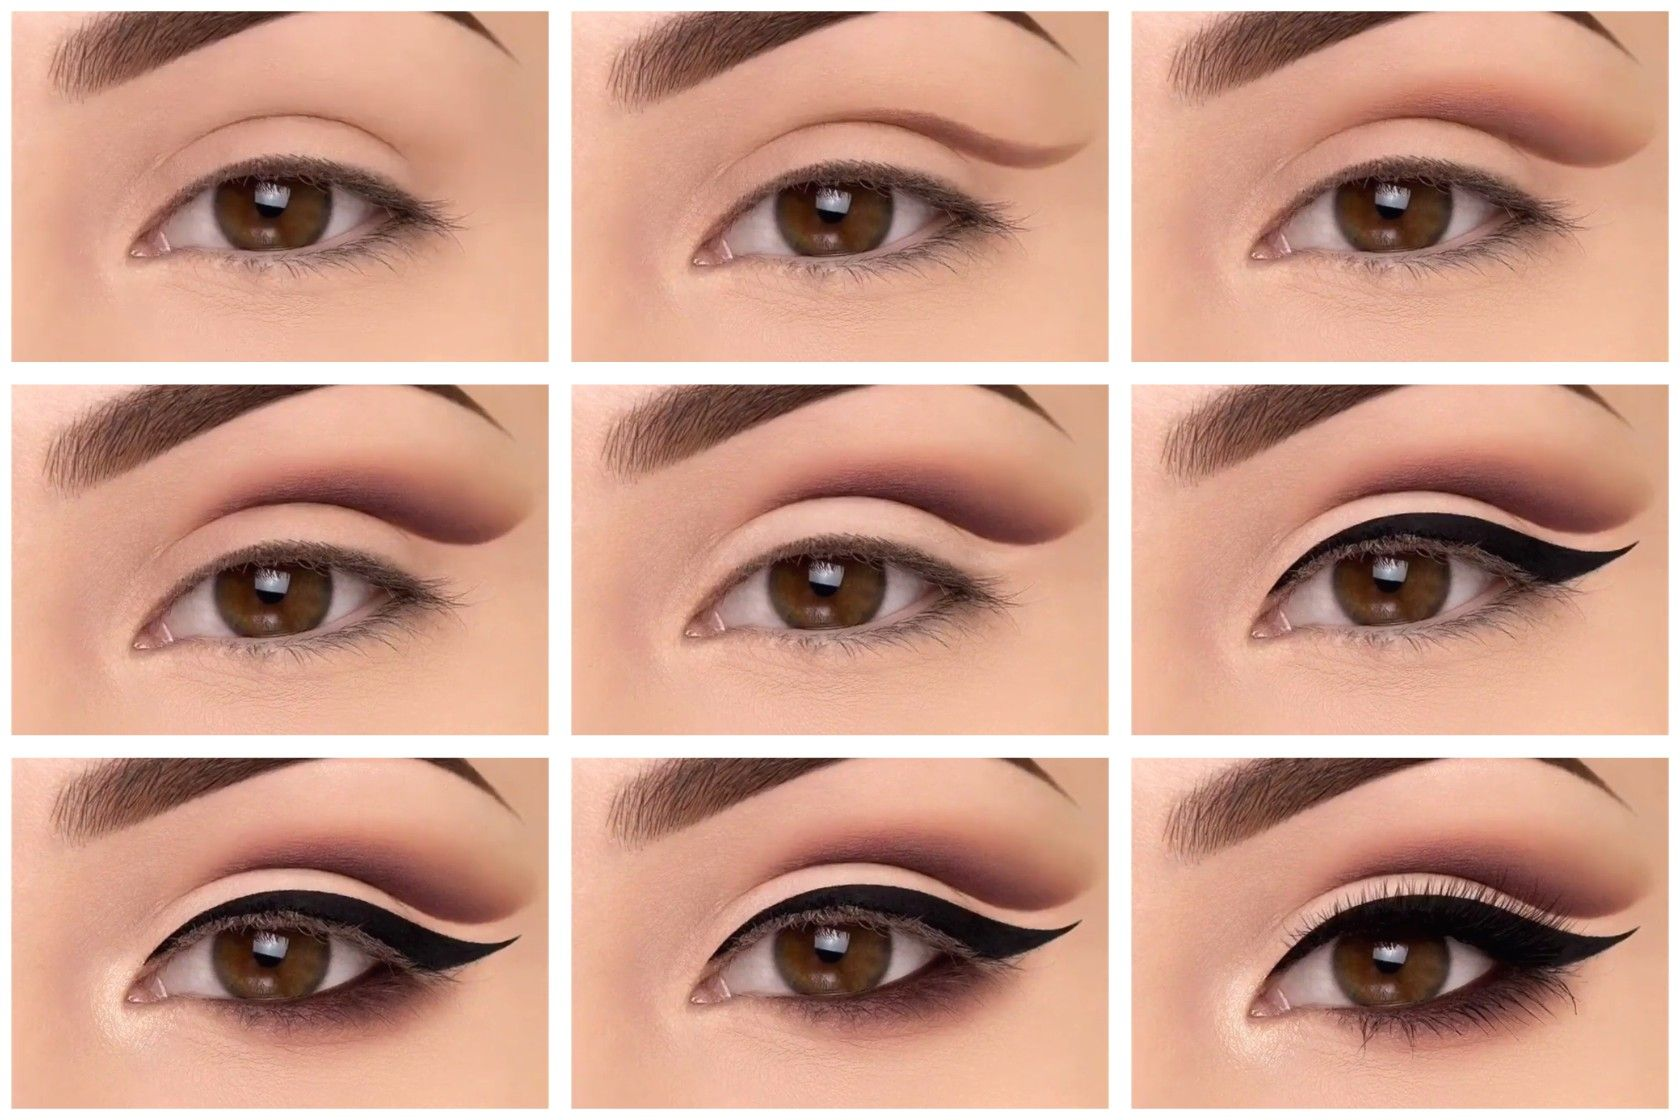 Eye makeup tutorial step by step instructions for cut crease